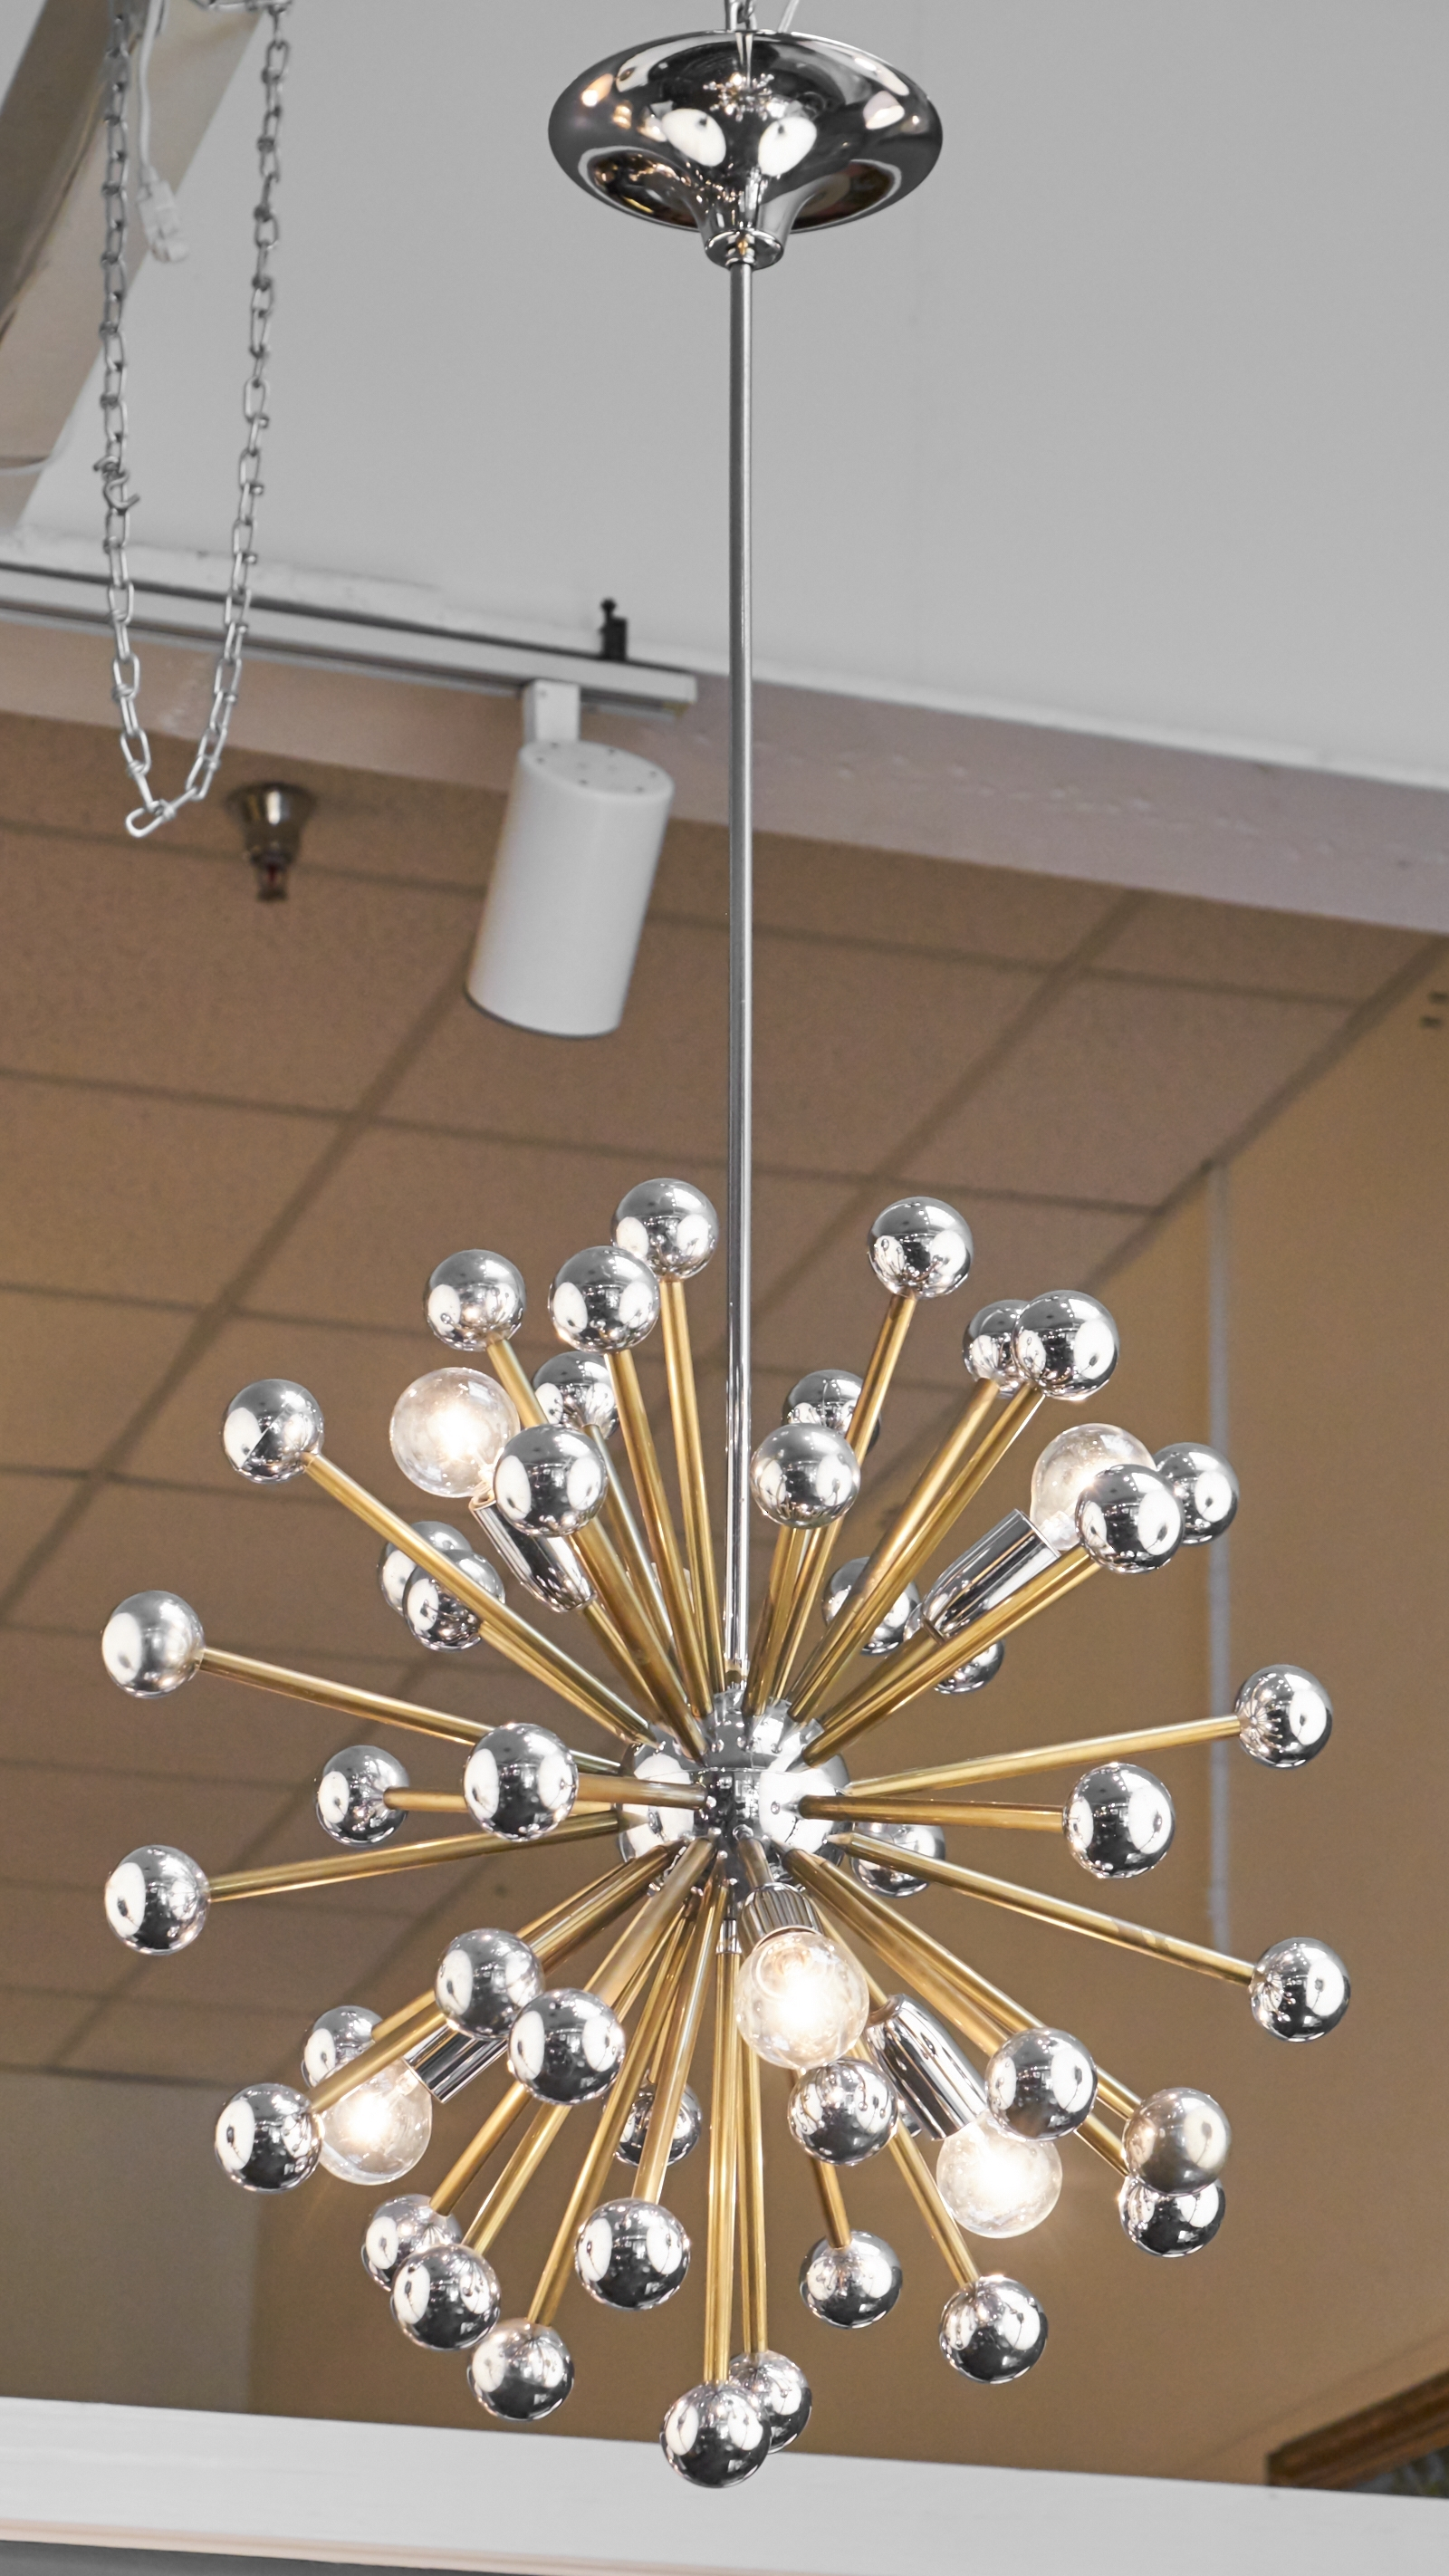 Most Recent Sputnik Chandelier – Pixball Regarding Chrome Sputnik Chandeliers (View 13 of 20)